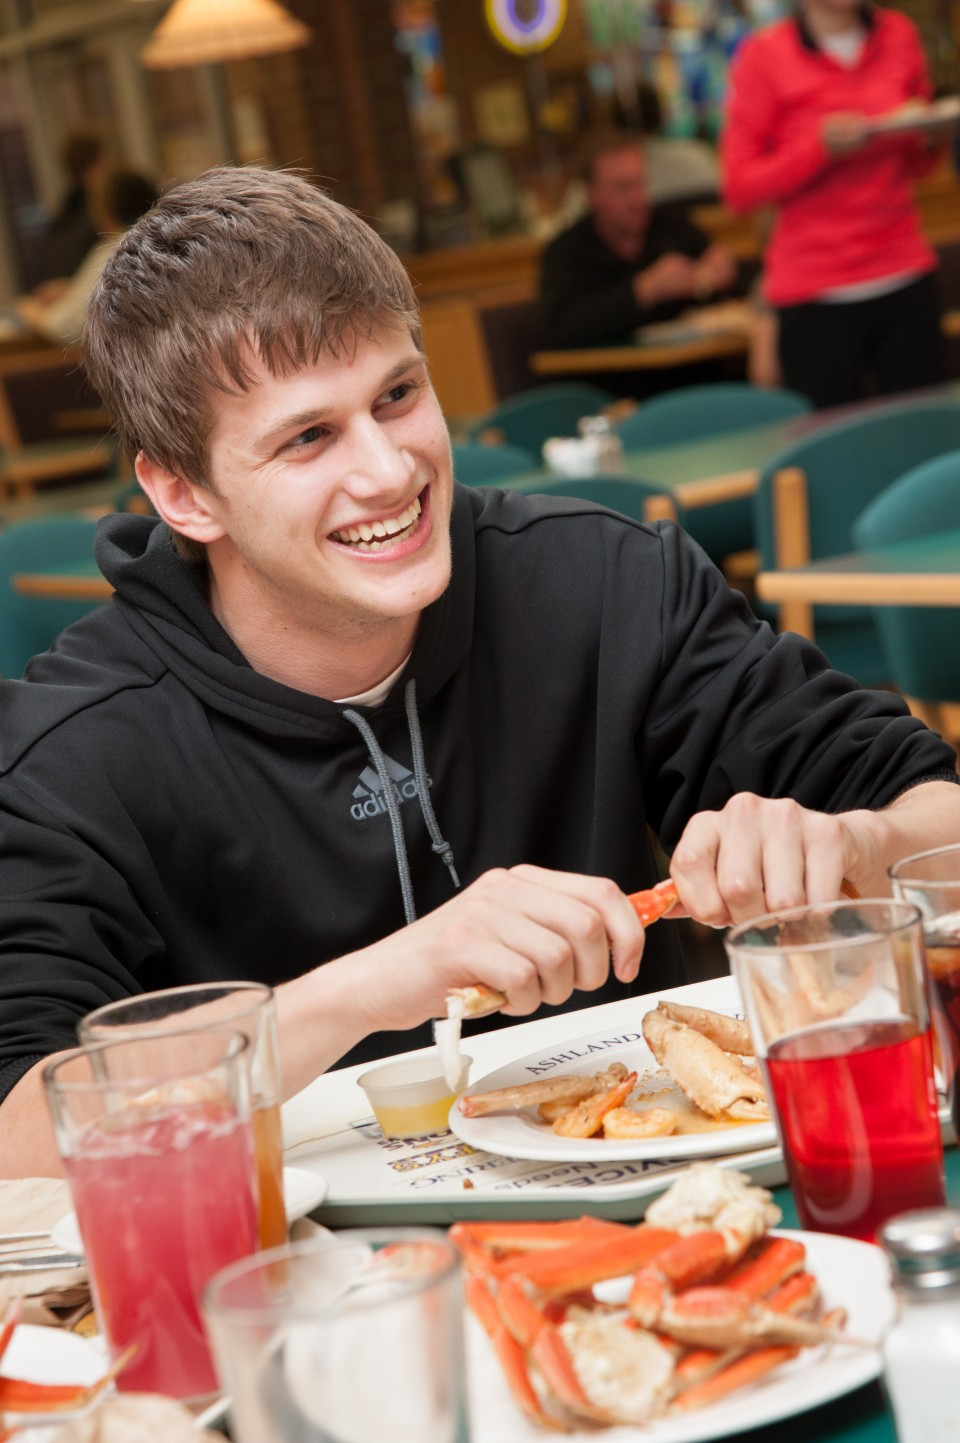 Student eating Crab Legs at a table inside Student Dining